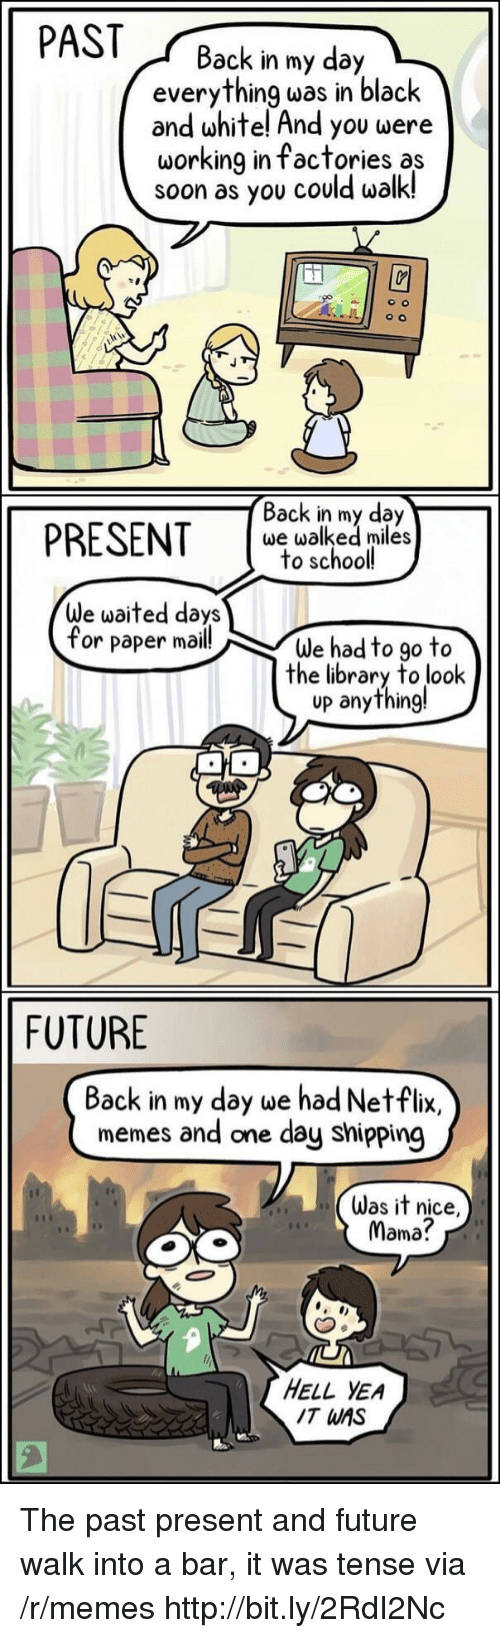 Future, Memes, and Netflix: PASTBack in my day  everything was in black  and white! And you were  working in factories as  soon as you could walk!  PRESENT s  Back in my day  we walked miles  to school  We waited days  for paper mail!  We had to go to  the library to look  up anything!  FUTURE  Back in my day we had Netflix,  memes and one day shipping  Was it nice,  Mama?  HELL YEA  IT WAS The past present and future walk into a bar, it was tense via /r/memes http://bit.ly/2RdI2Nc